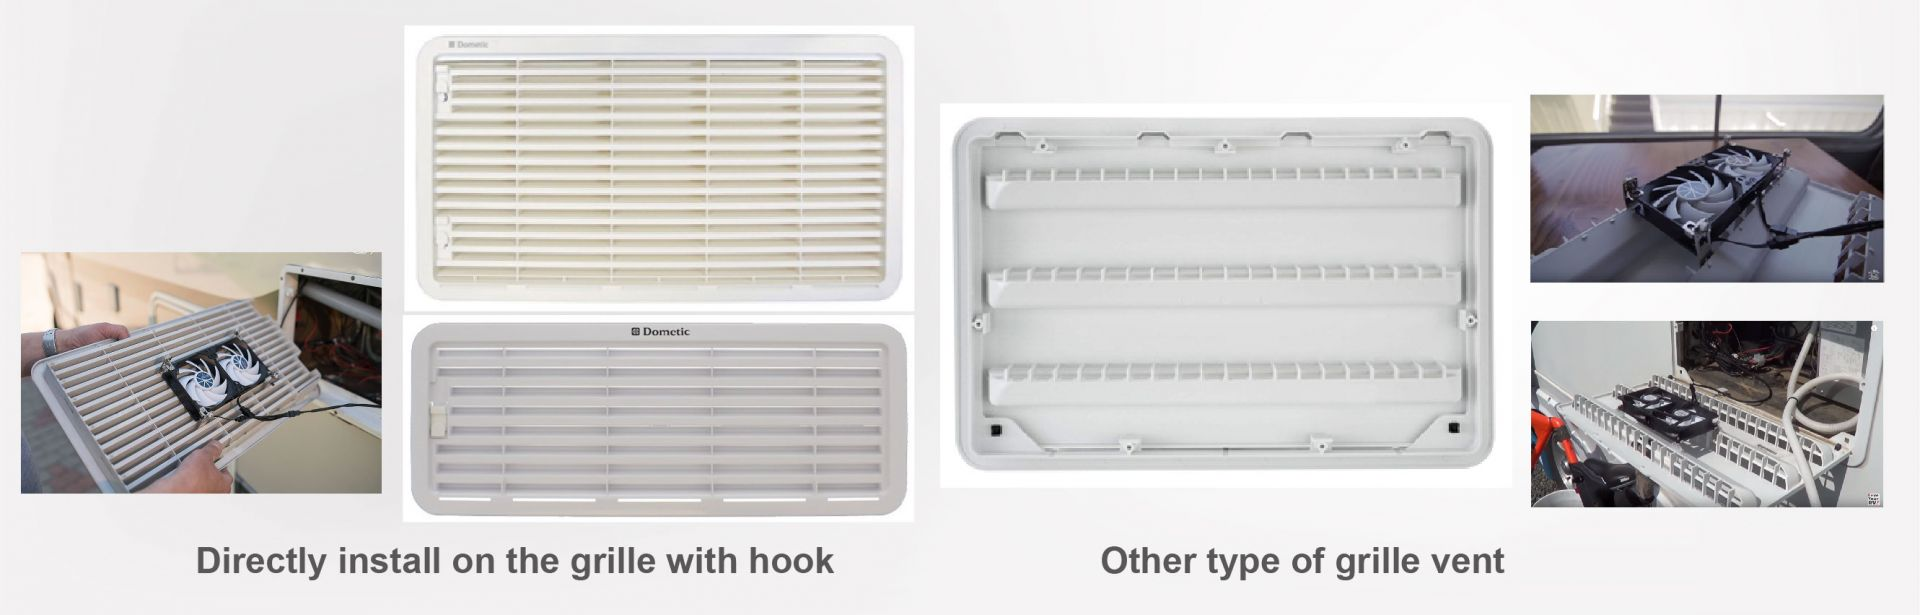 RV fridge ventilation grille types